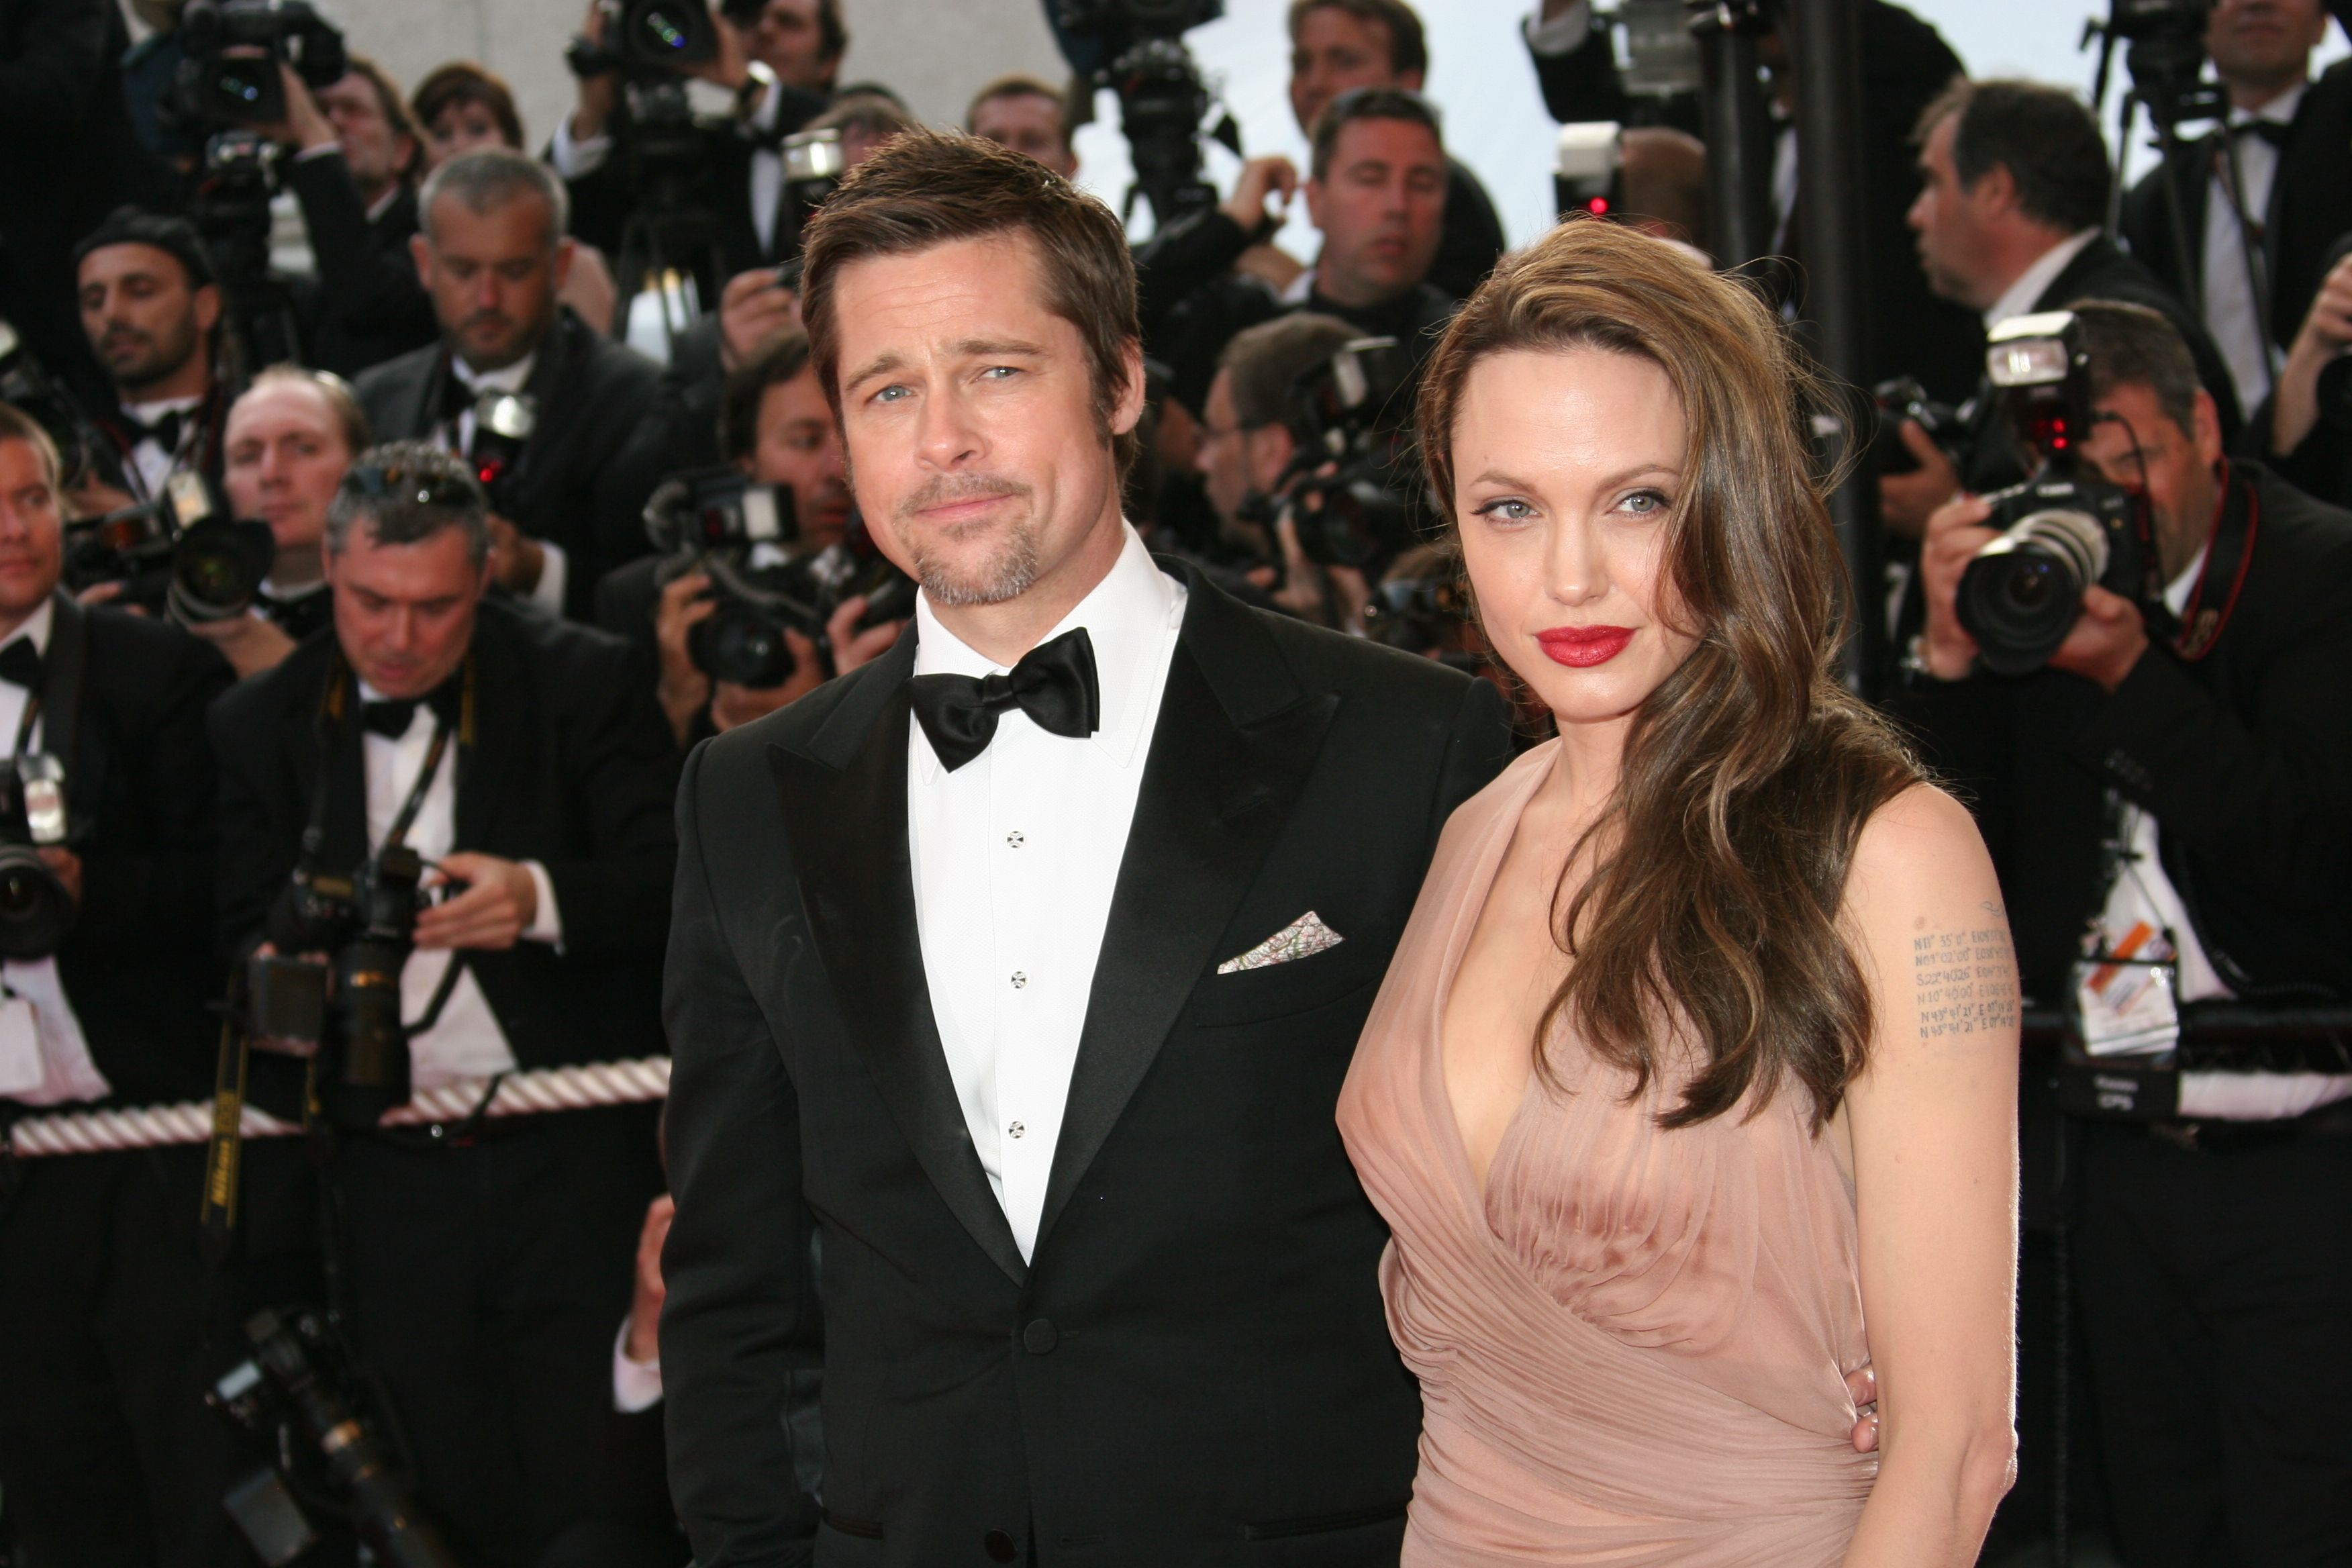 10 Celebs Who Are Seriously Whipped By Their Spouse